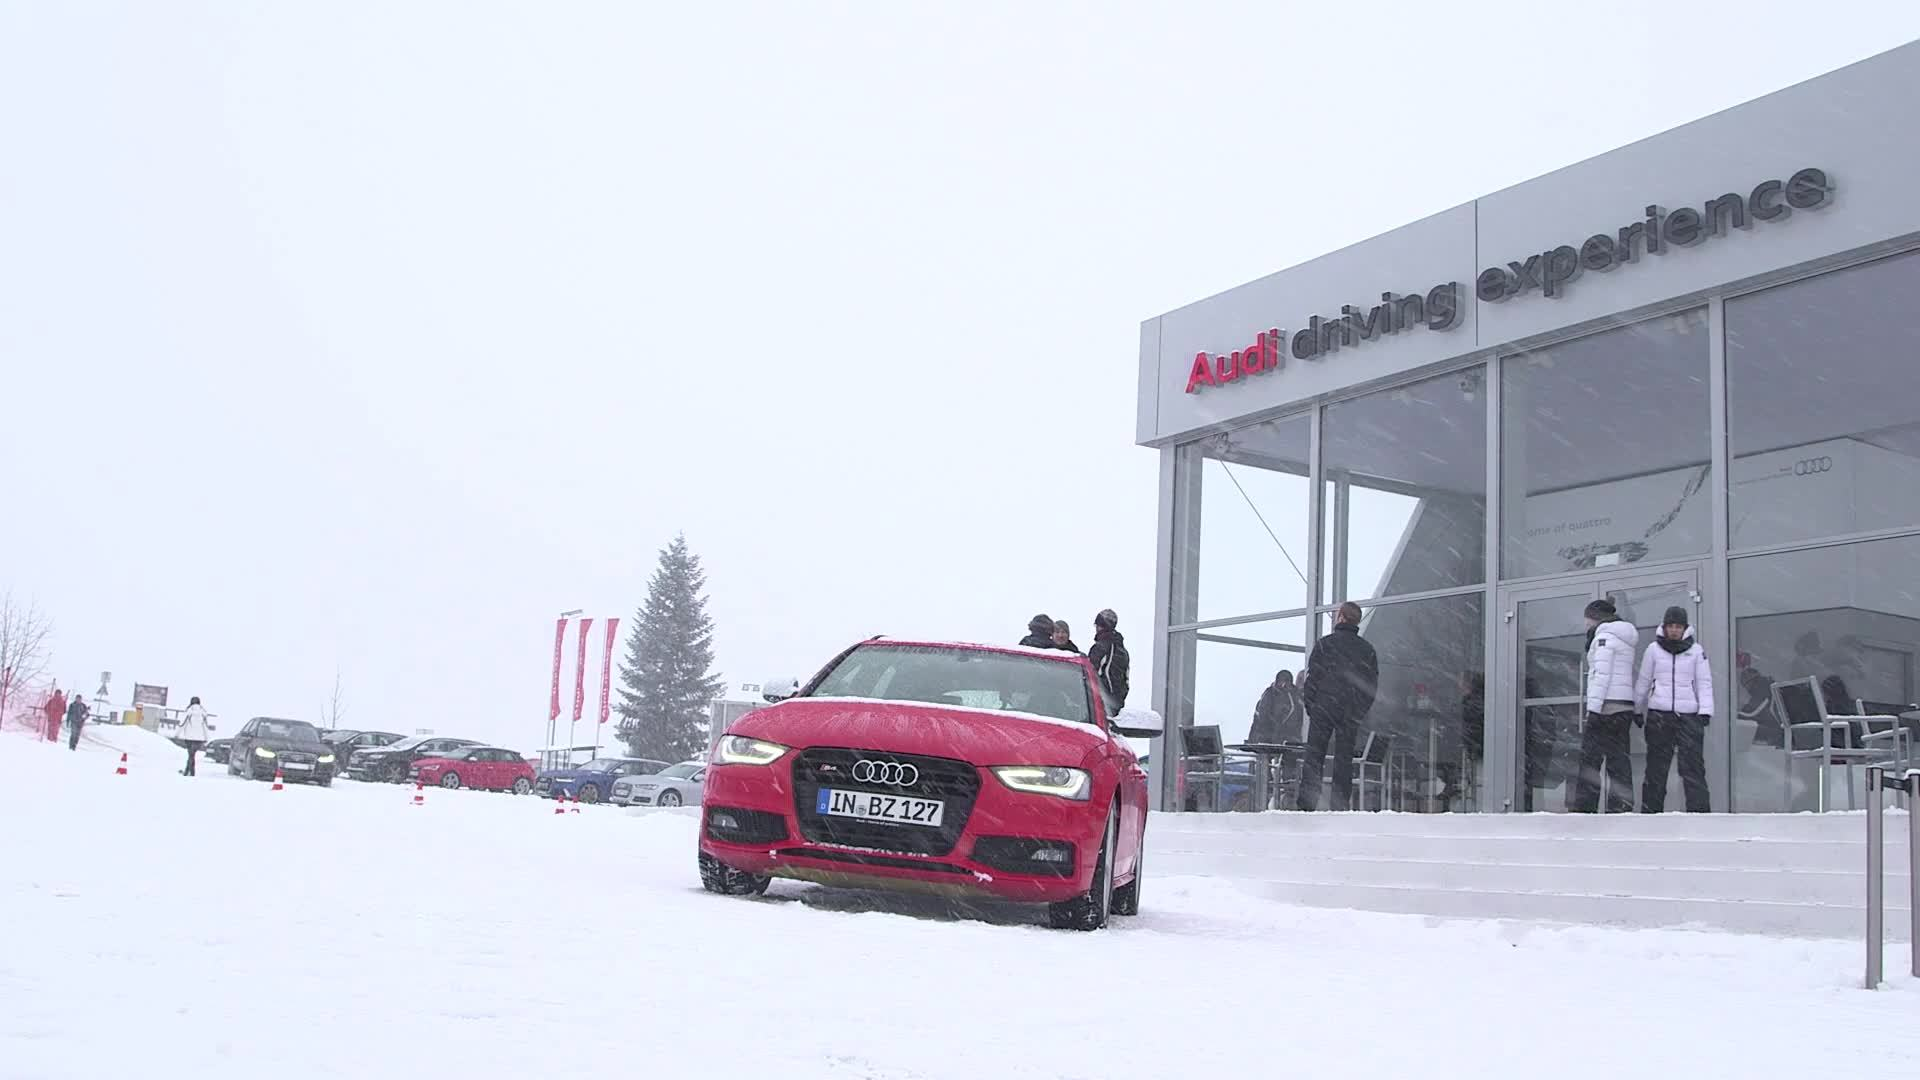 The FC Bayern at the driving experience in Kitzbuehel - Footage EN